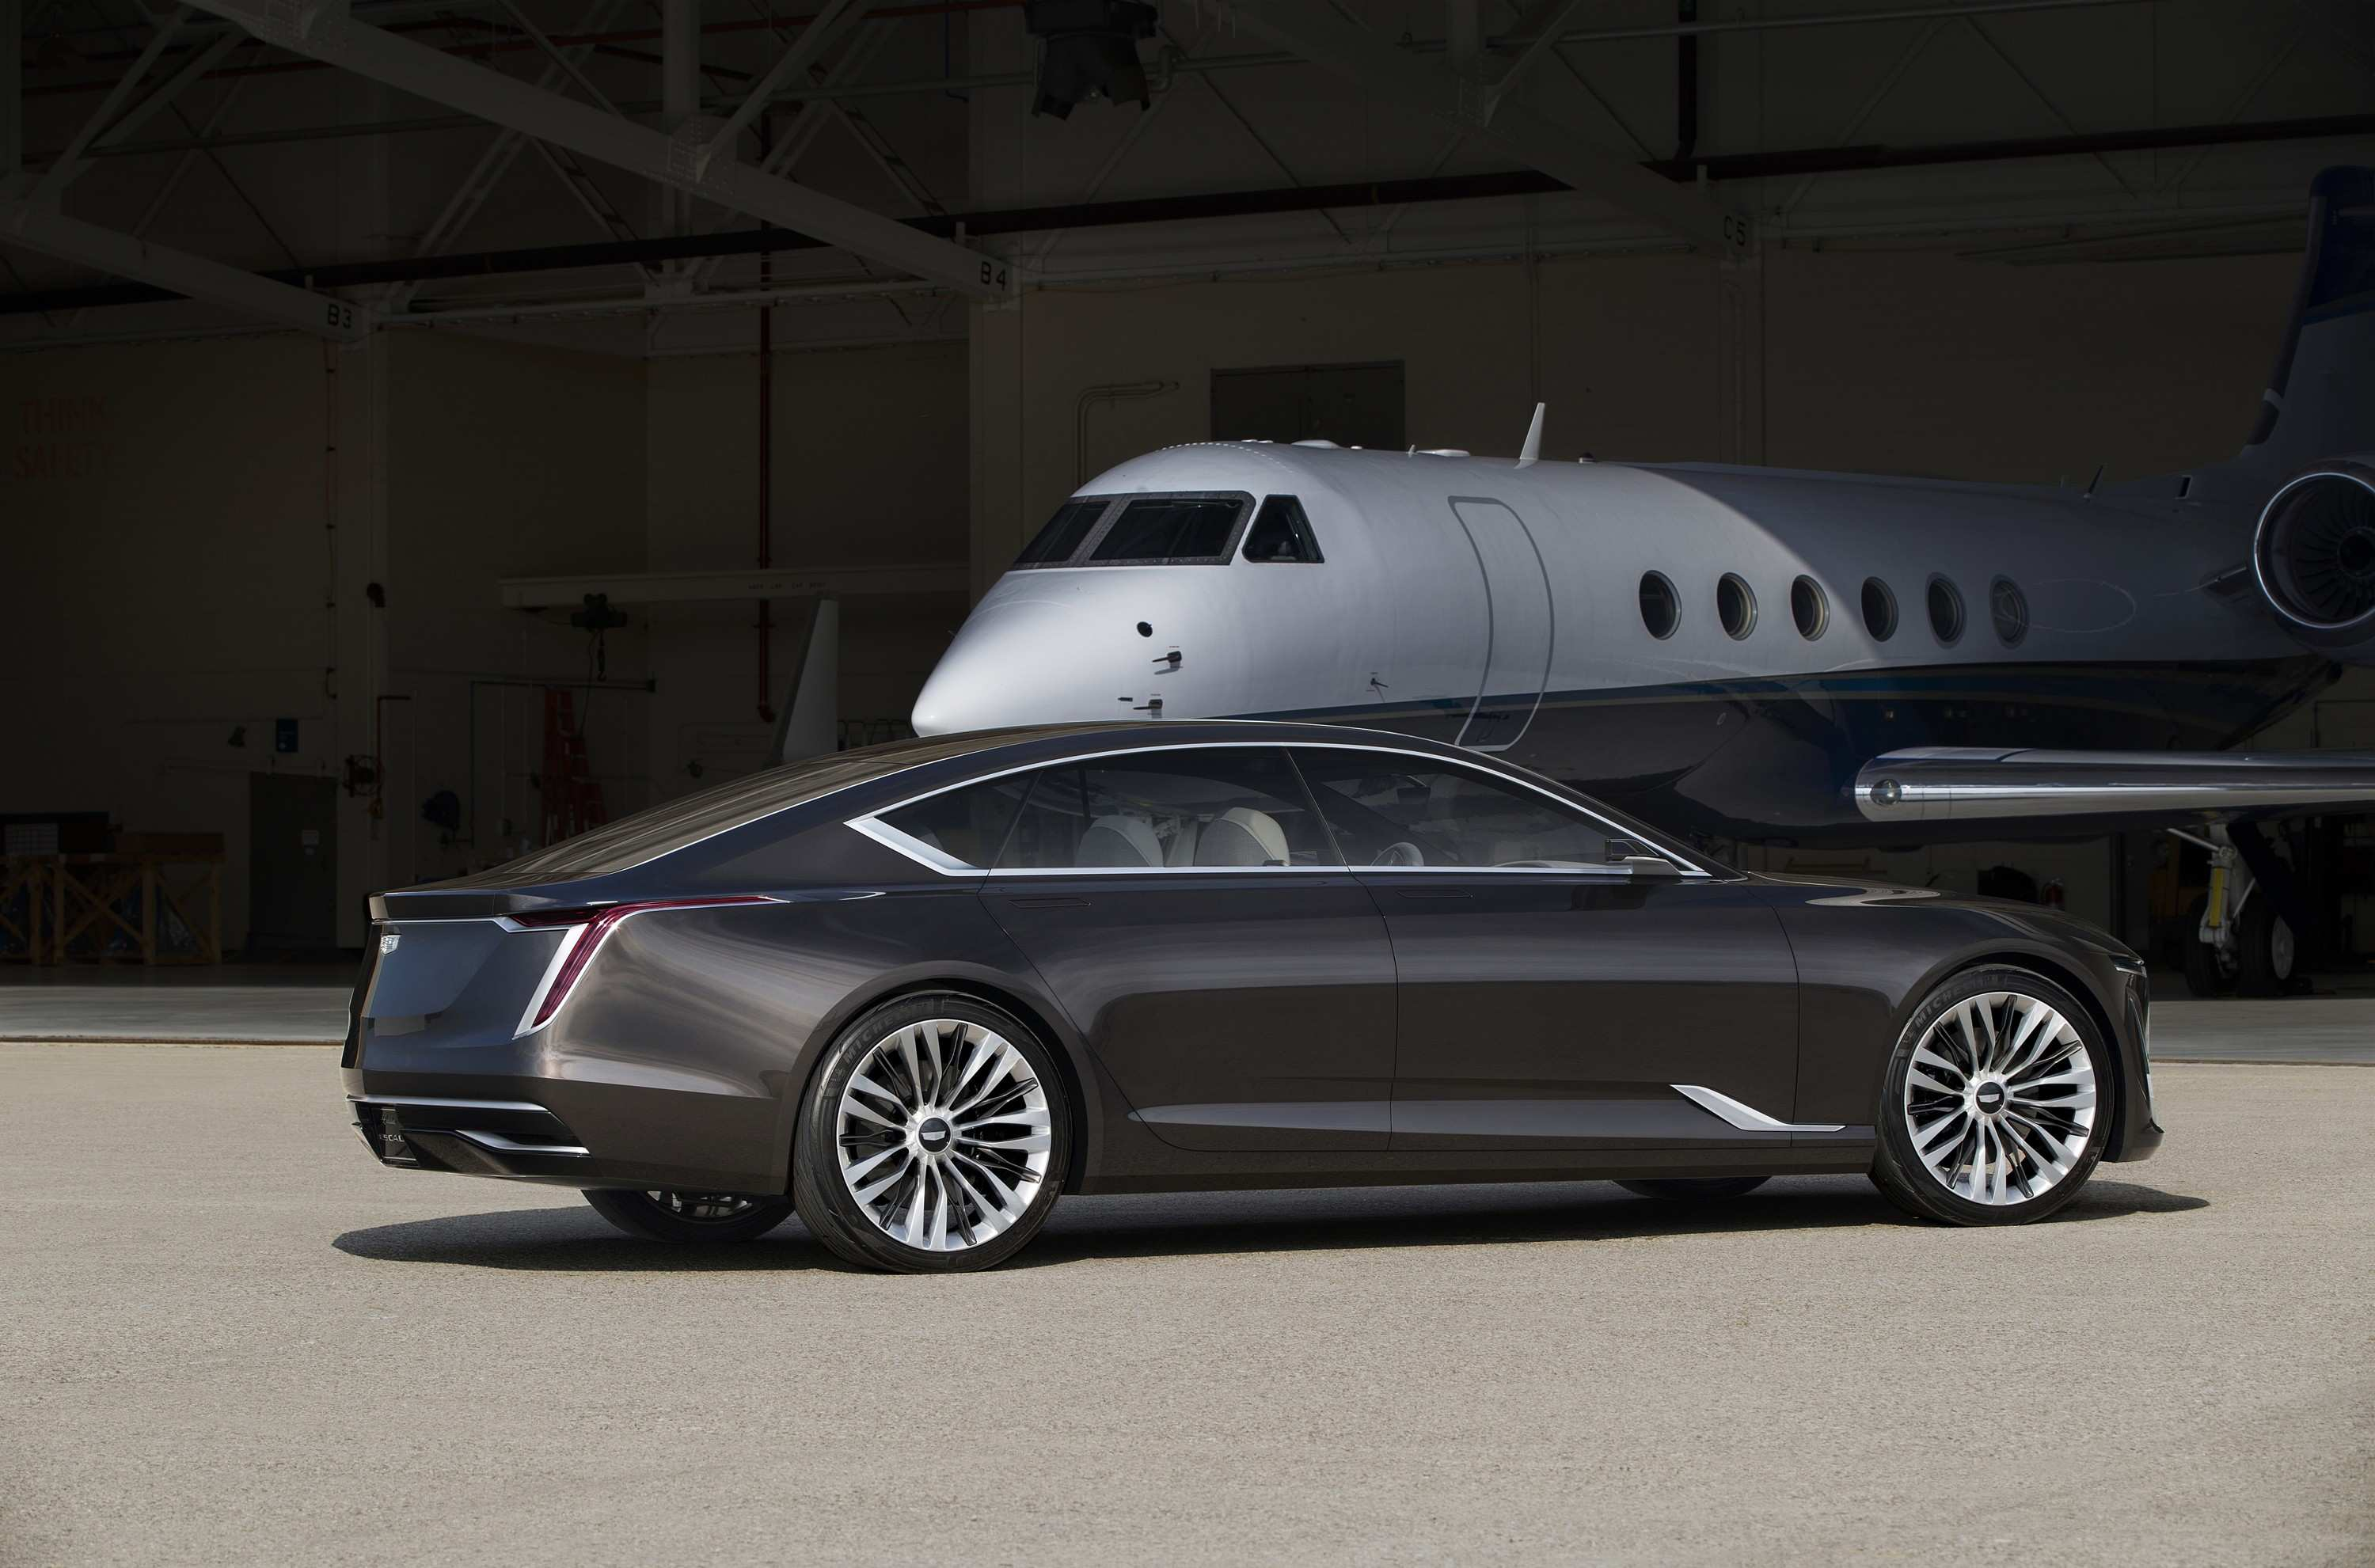 84 The Best 2020 Cadillac XTS Configurations